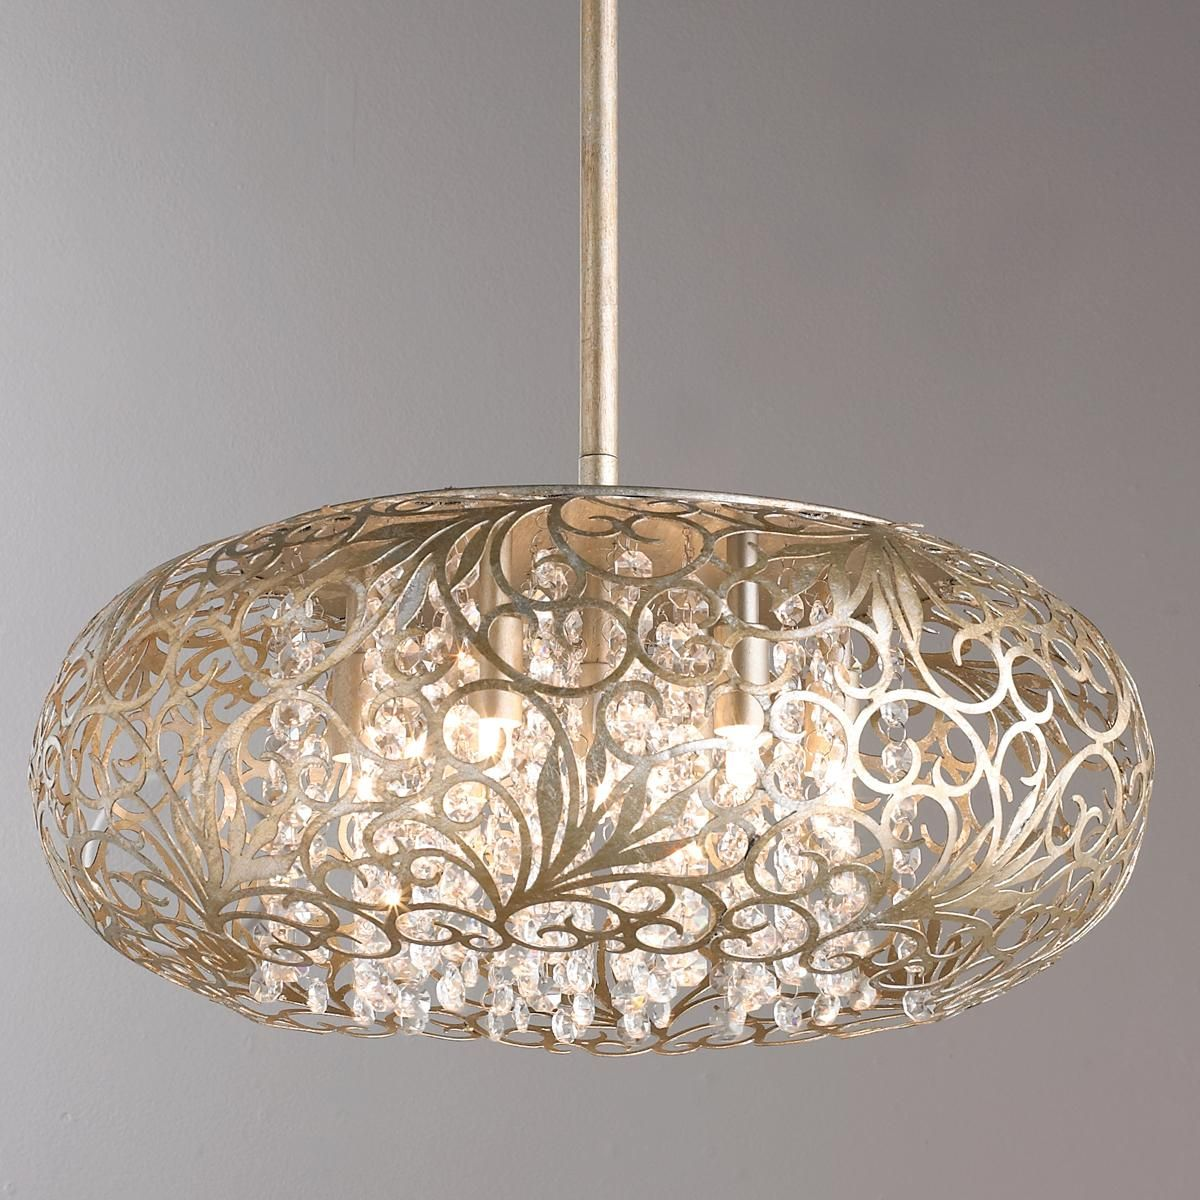 "Arabesque Crystal Pendant Chandelier The intricate patterns of this pendant light are formed in metal and finished in Golden Silver. Strands of crystal beads add sparkle as they shimmer through the Xenon lamps. The unique cut out shape adds a touch of class to any room. 7x50 watt G9 Xenon frosted bulbs included. (8""Hx18""W)"